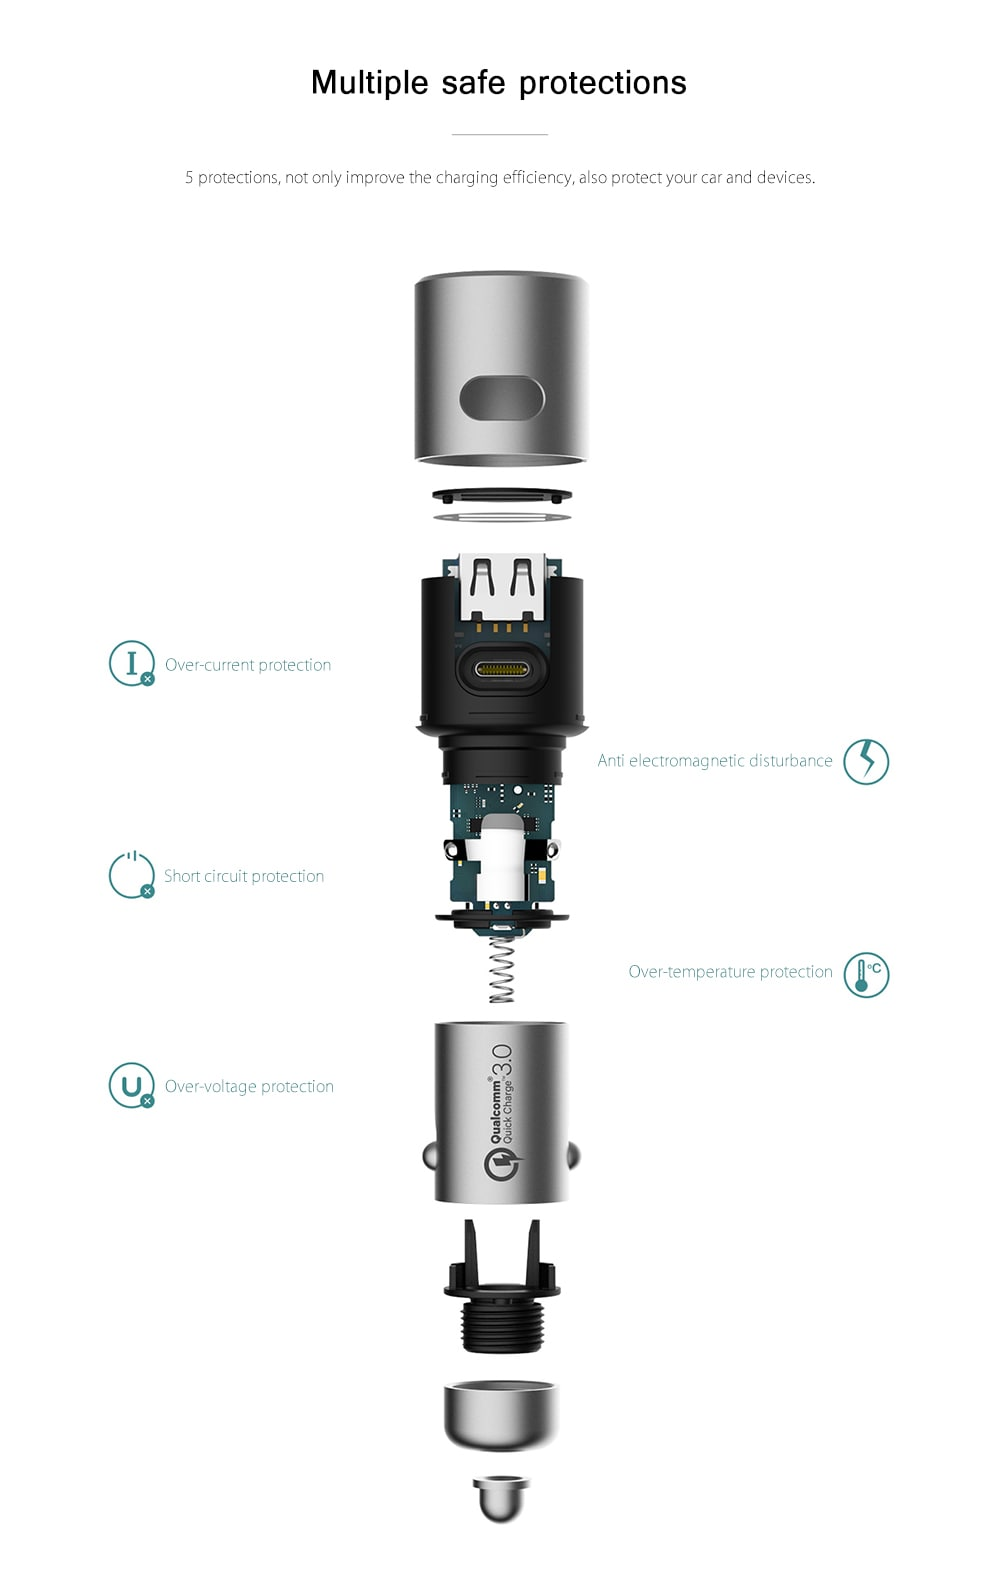 Xiaomi Mi Car Charger Qc 3 0 Fast Charge Version